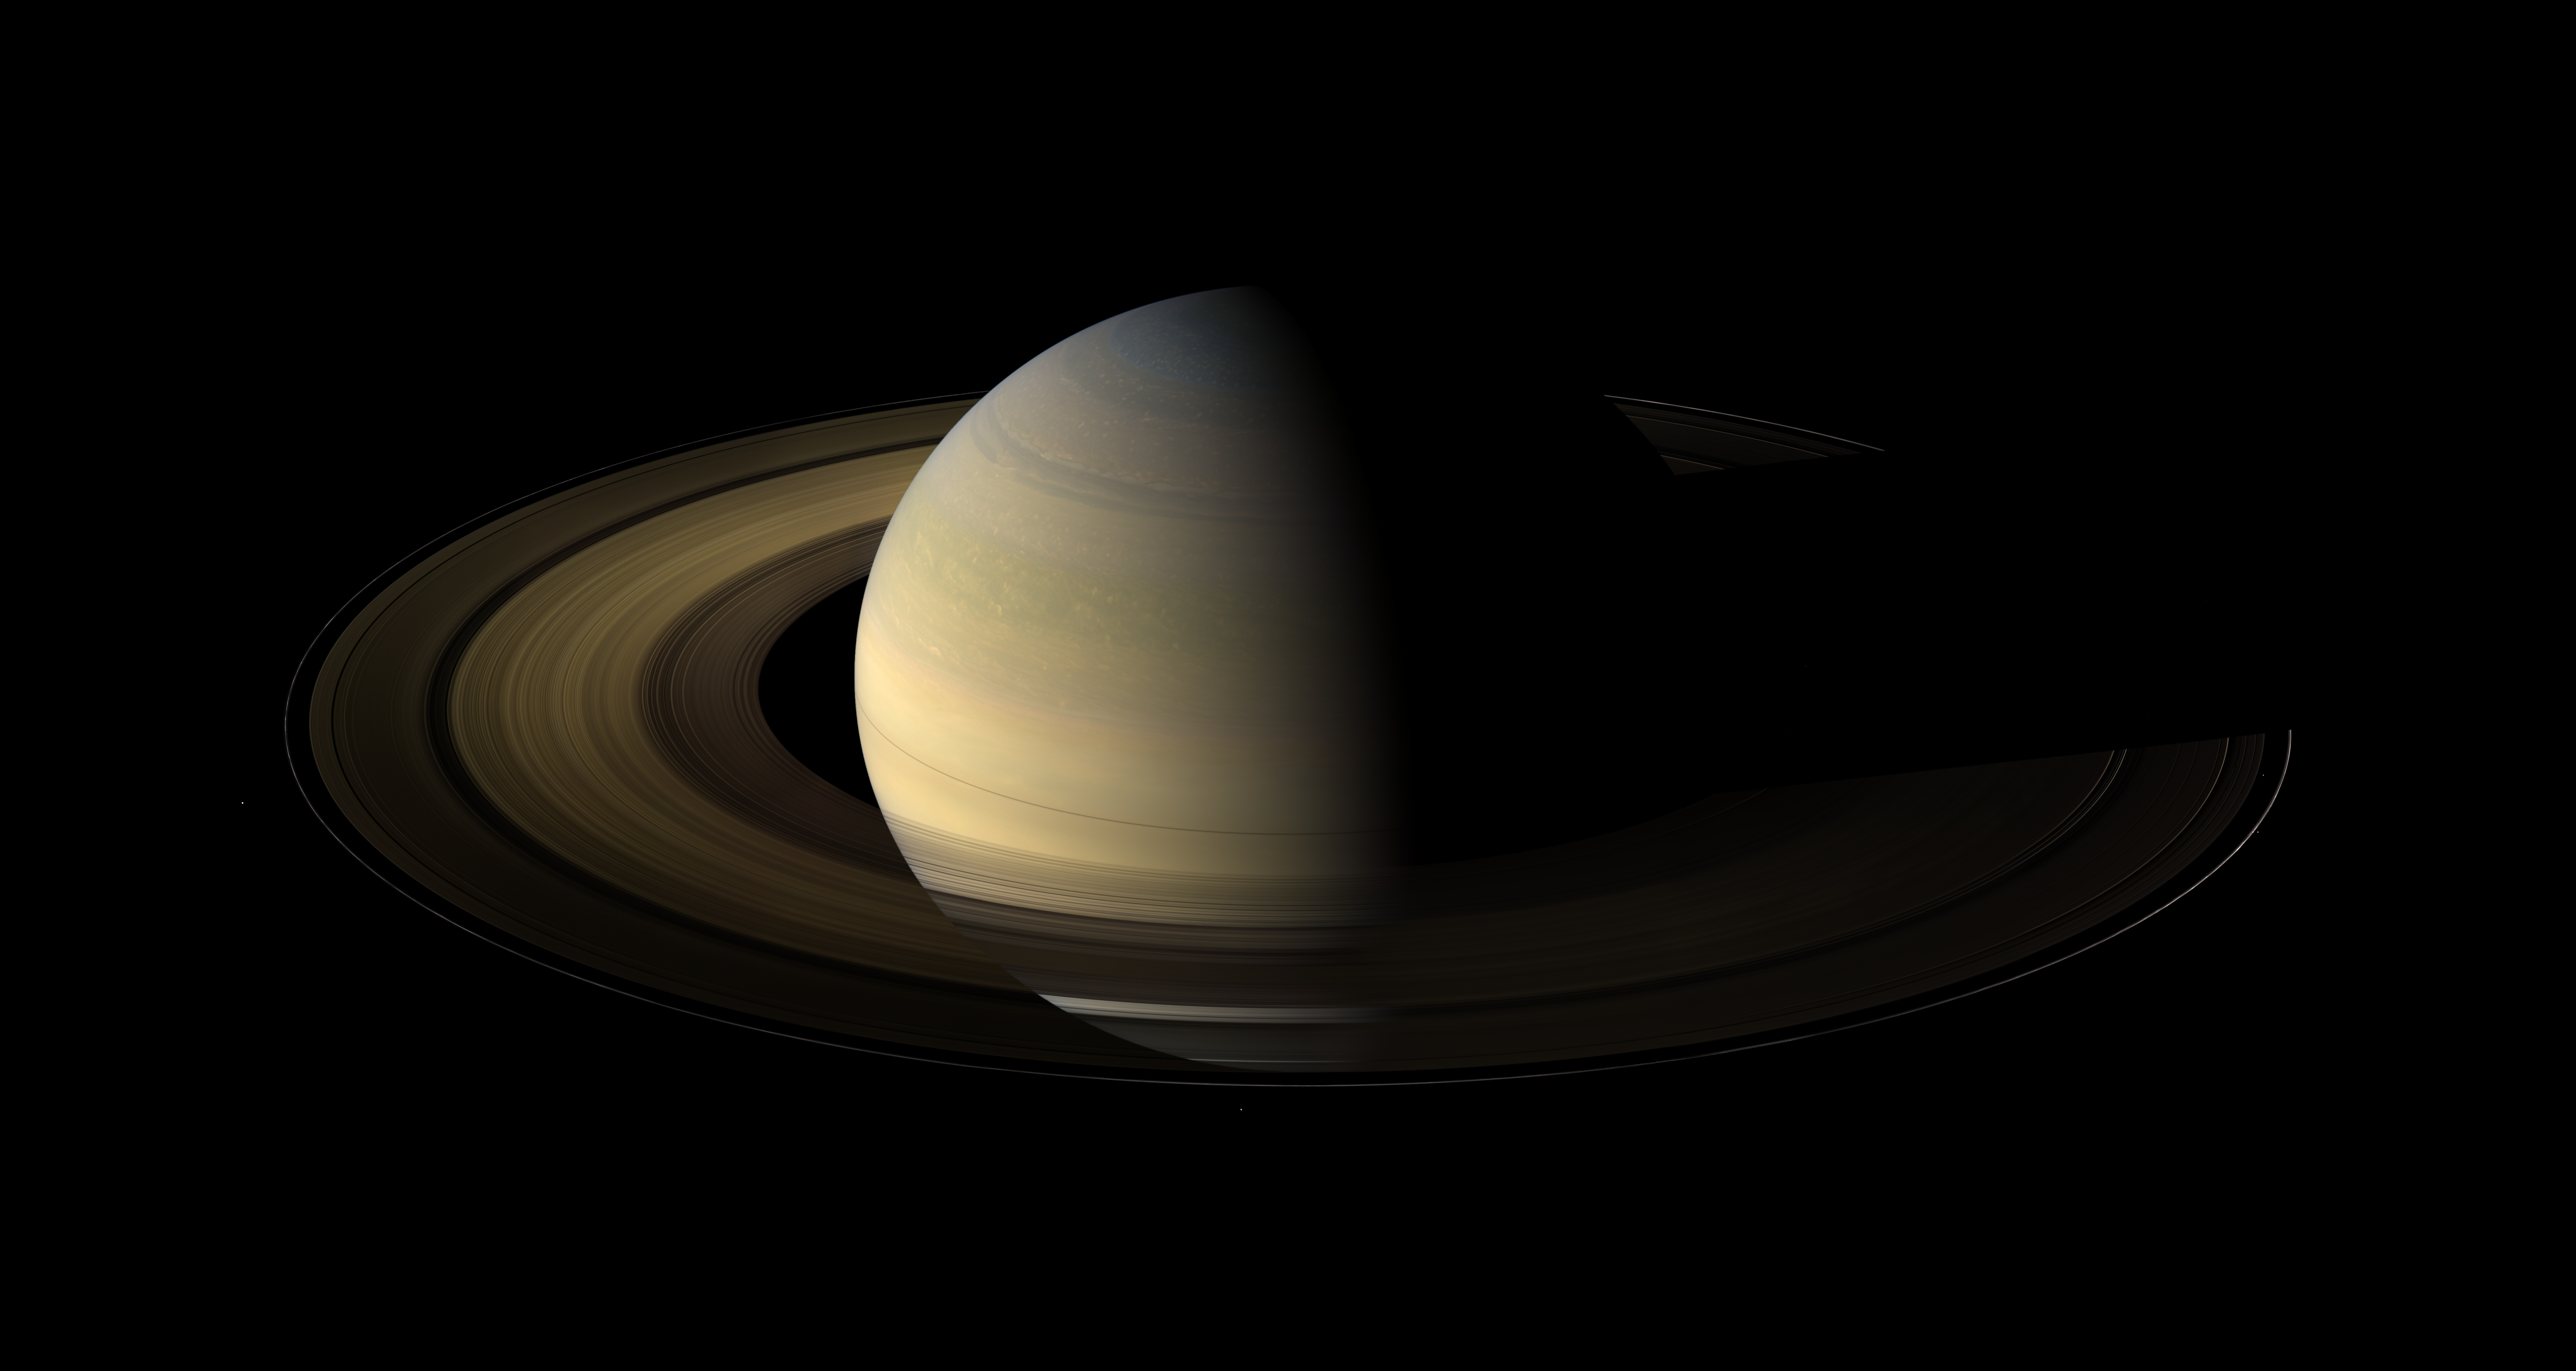 saturn moons and rings - photo #6